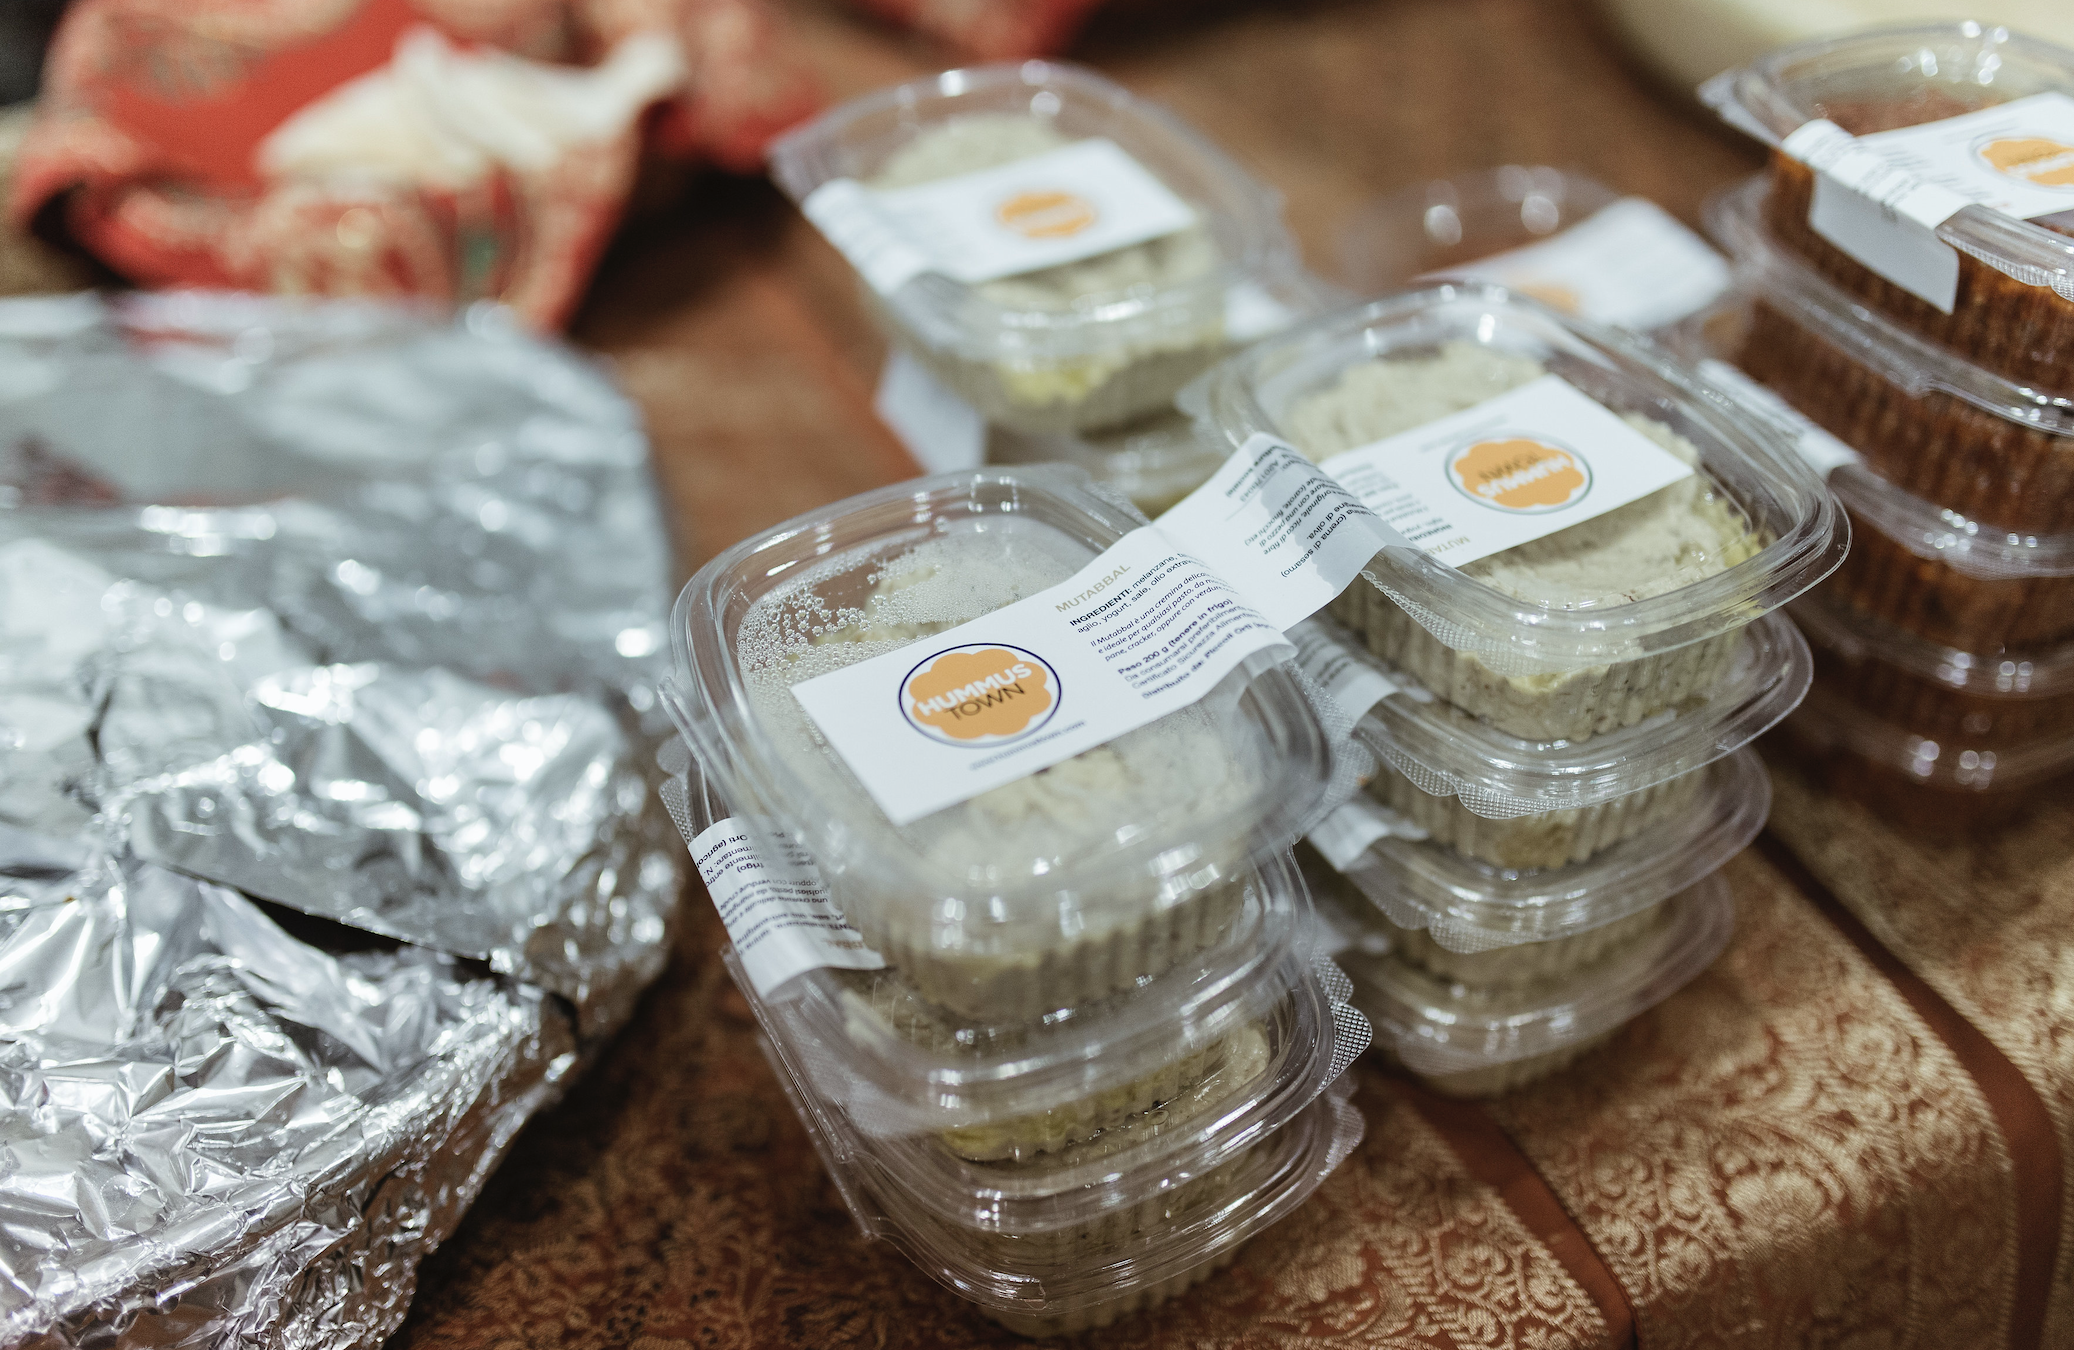 hummus packed in to-go containers on a table